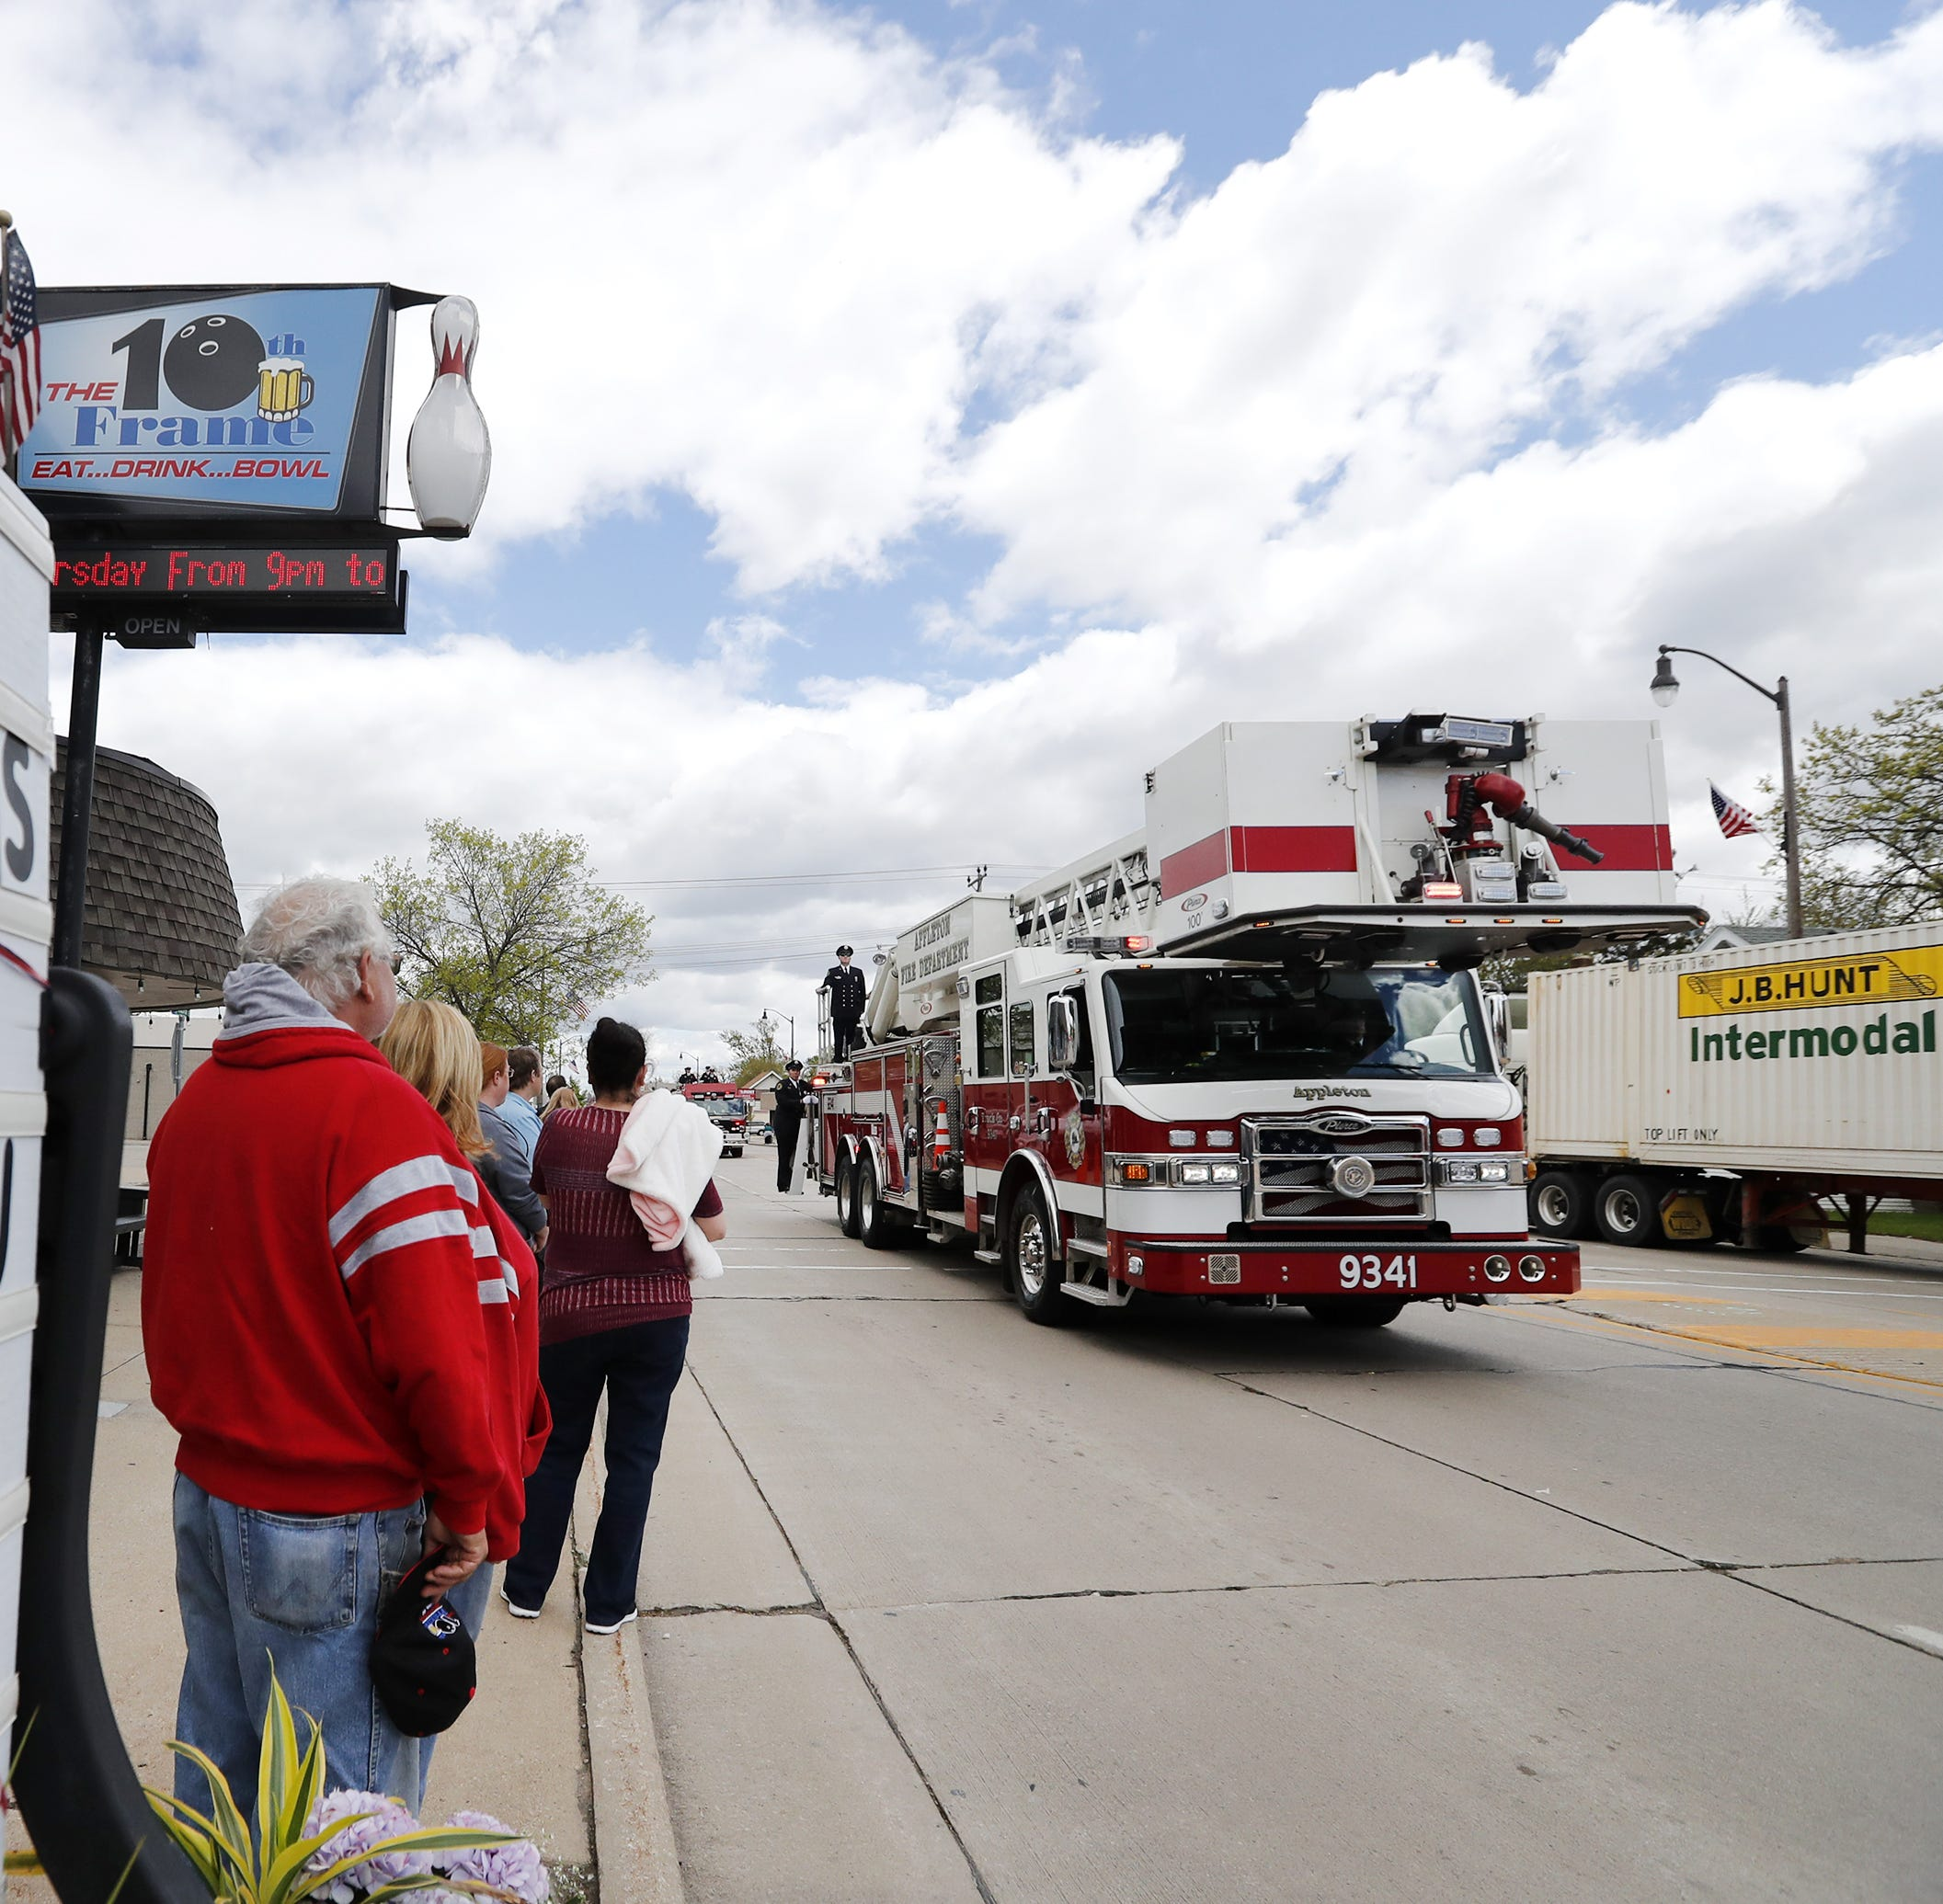 Appleton shooting: Police warn of scam calls related to fundraiser for firefighter's family